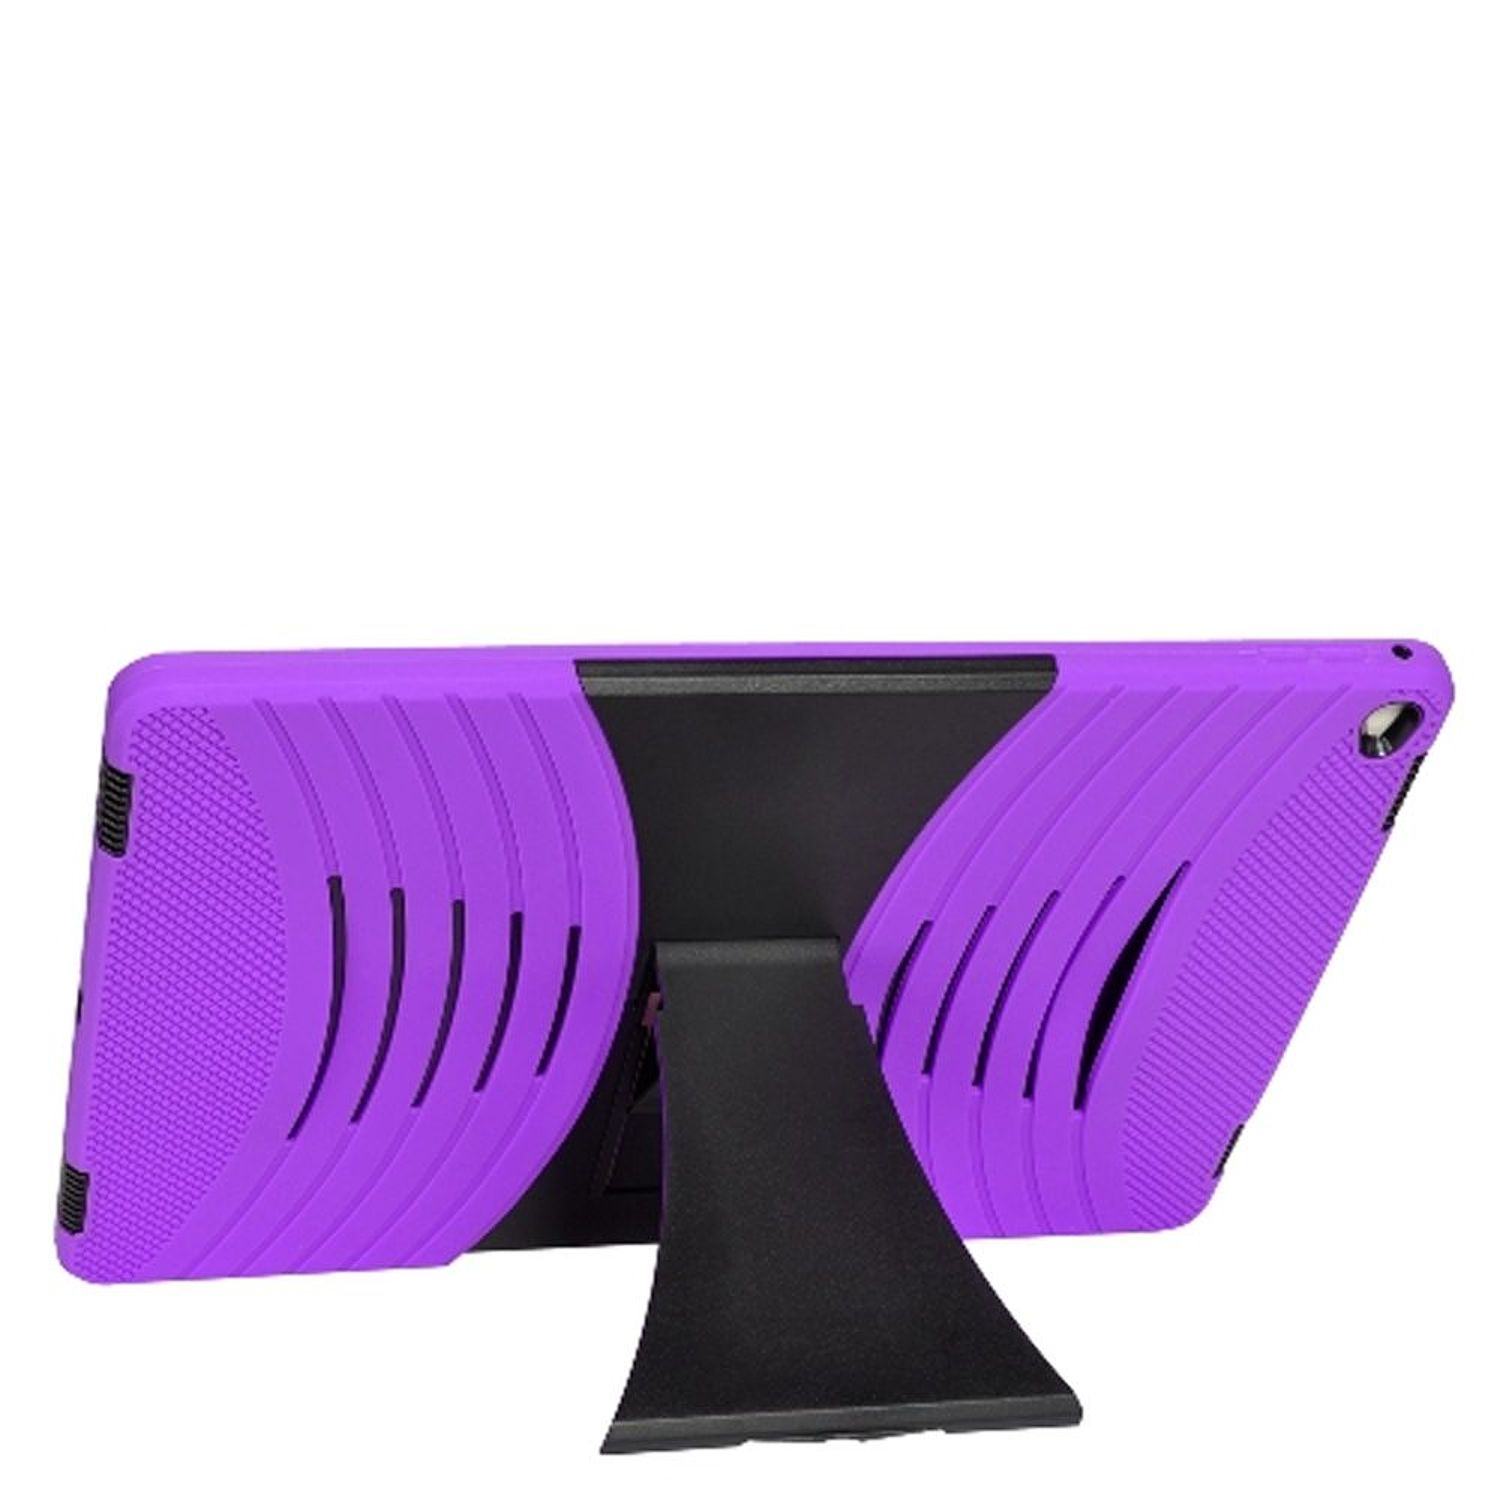 "iPad 12.9 Pro case, by Insten Dual Layer [Shock Absorbing] Hybrid Stand Rubber Silicone/Plastic Case Cover For Apple iPad Pro 12.9"", Purple/Black"